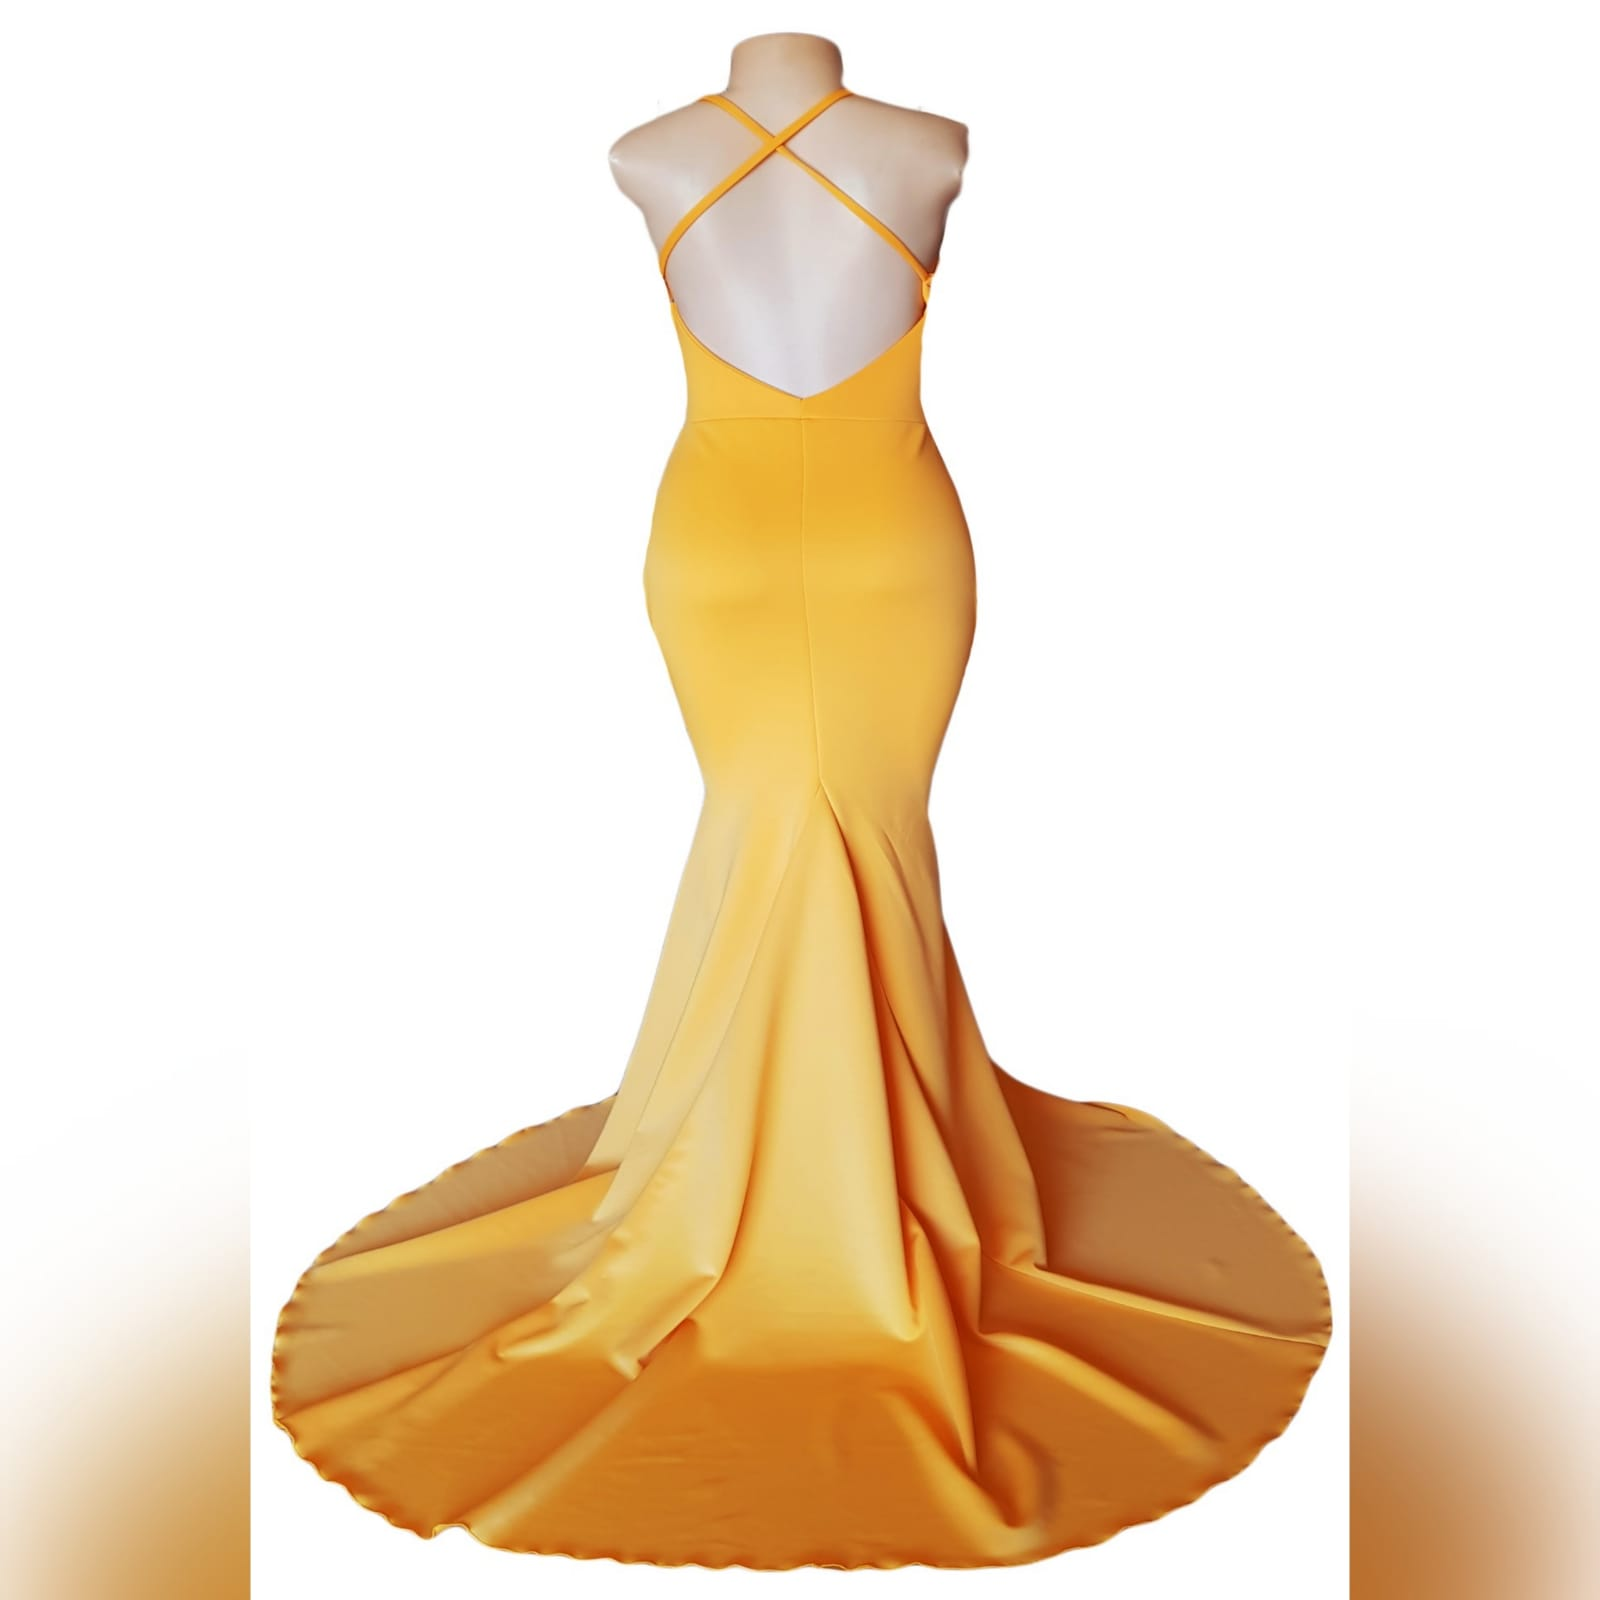 Yellow soft mermaid prom dress 7 yellow soft mermaid prom dress with a triangle tummy opening. V neckline and an open back with crossed spaghetti straps and a train.